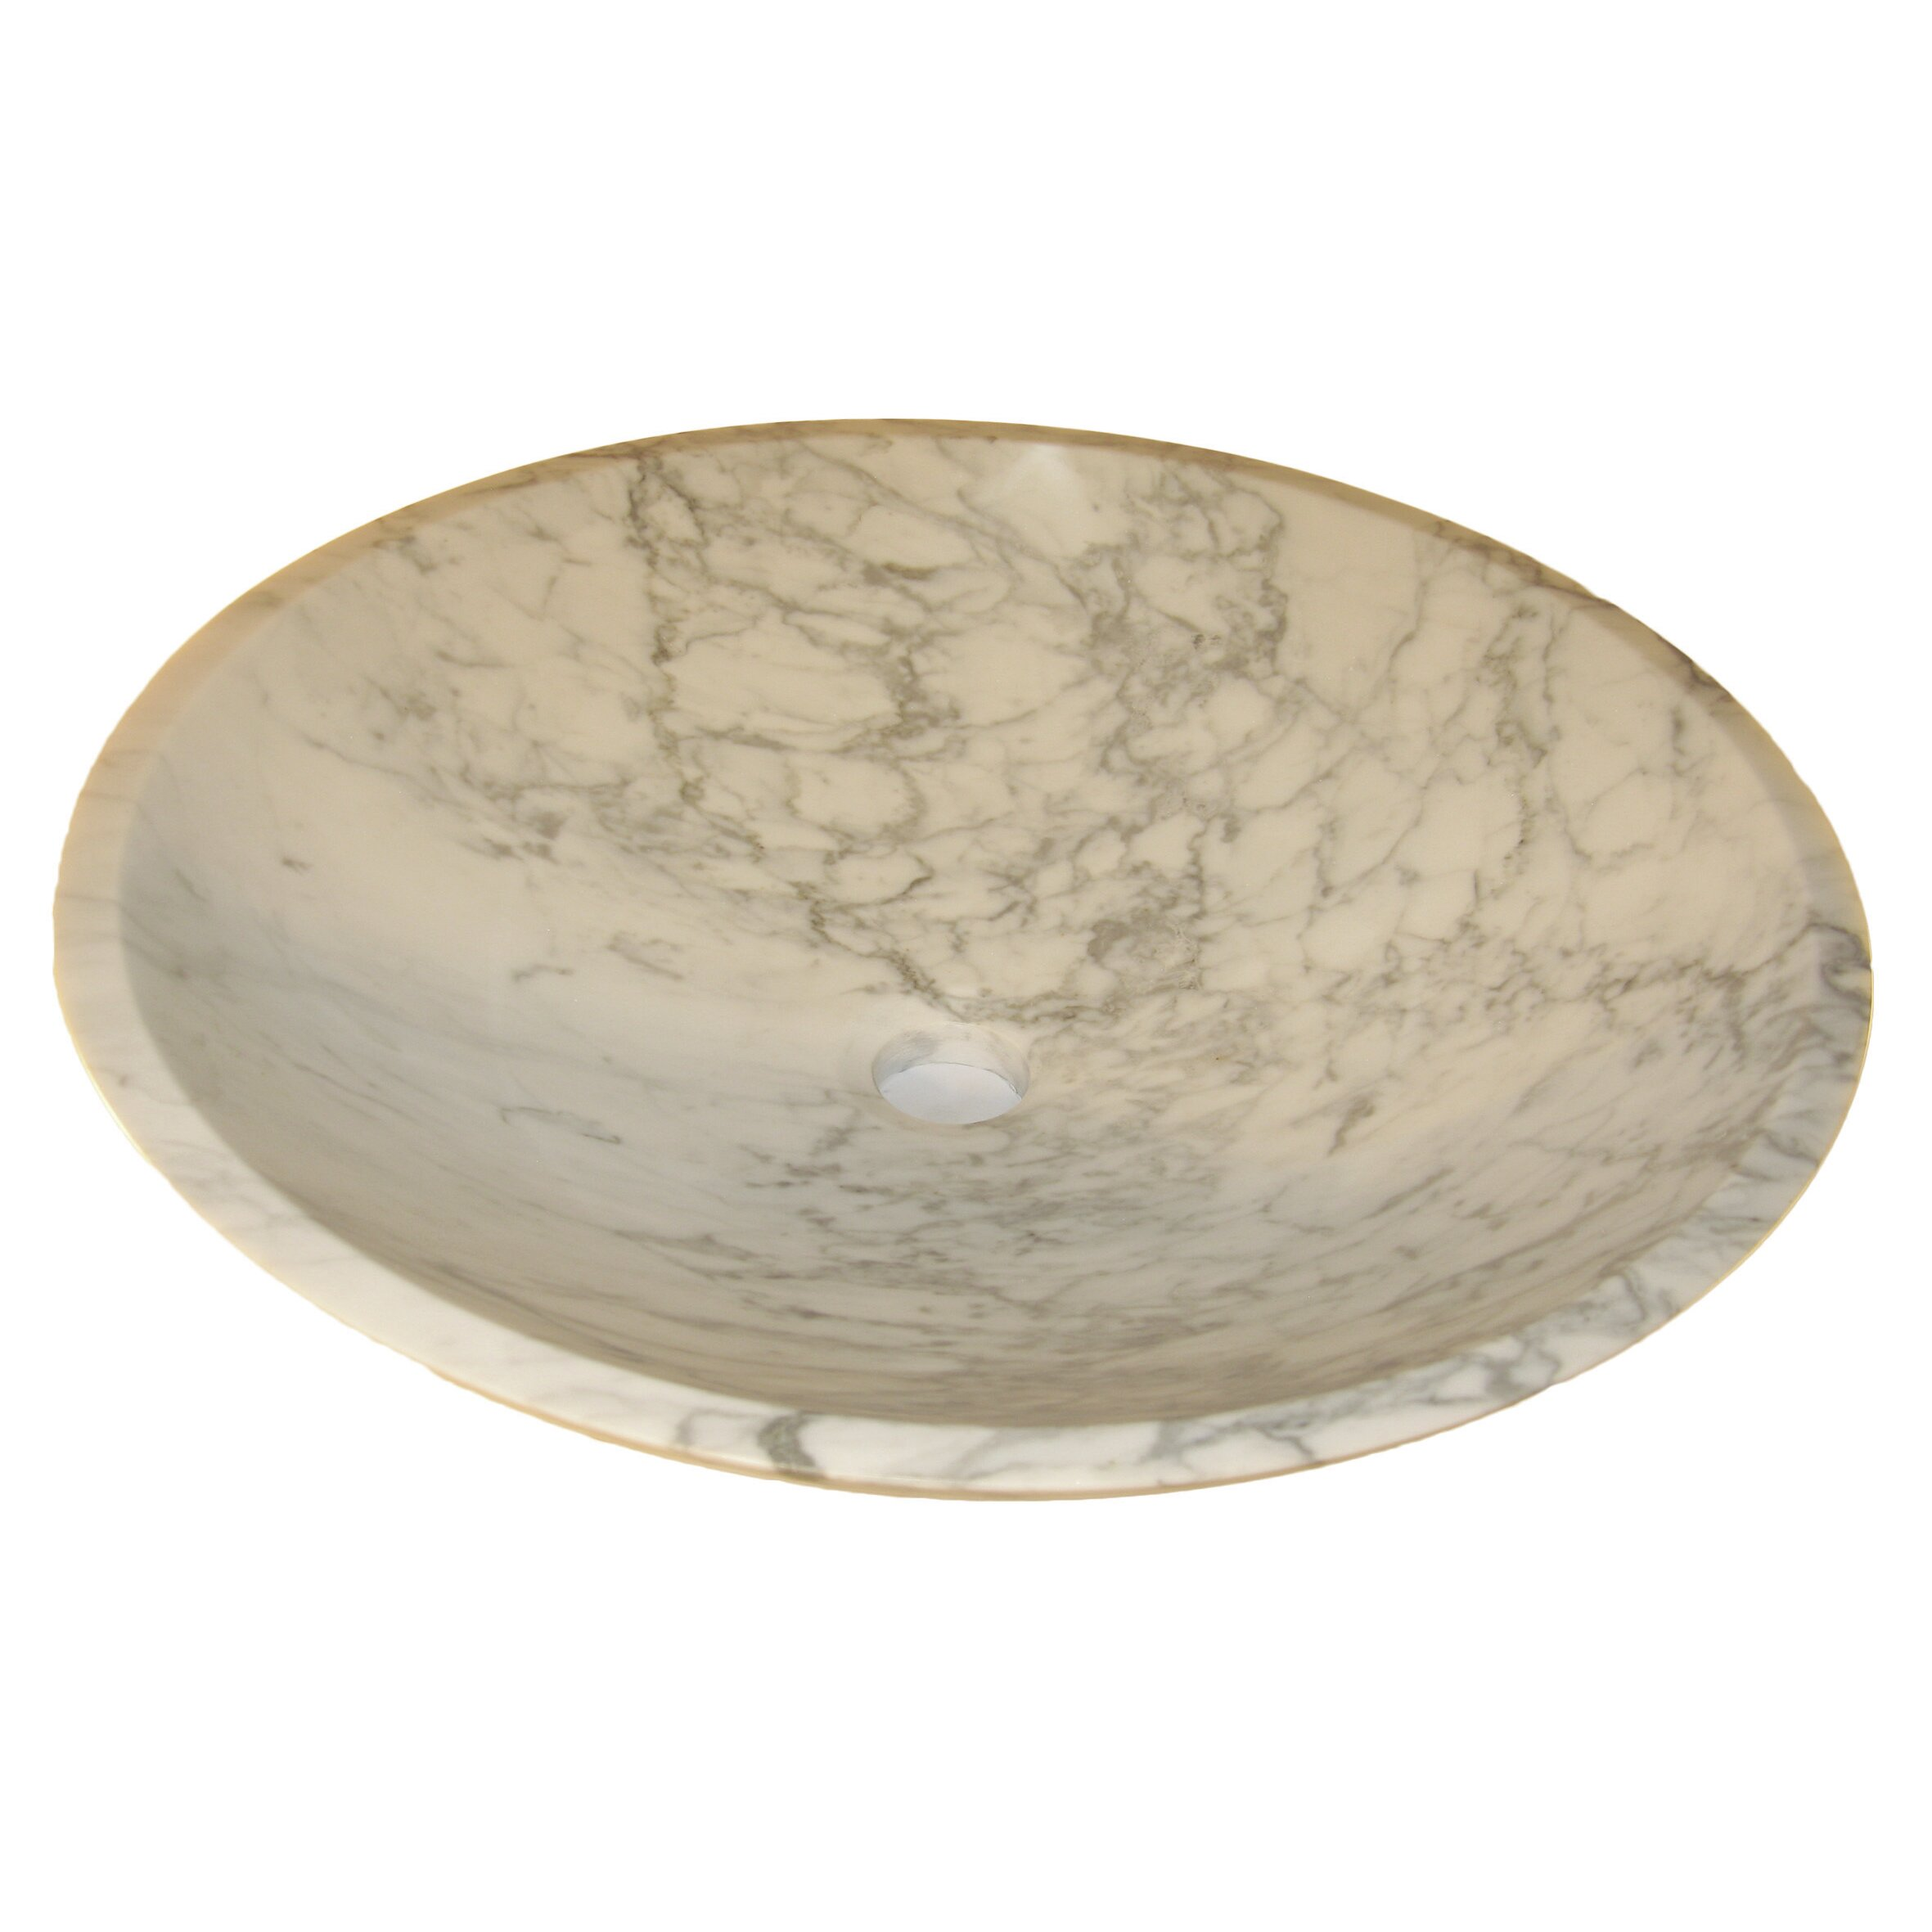 White Marble Vessel Sink : Novatto White Marble Vessel Bathroom Sink and Umbrella Drain Wayfair